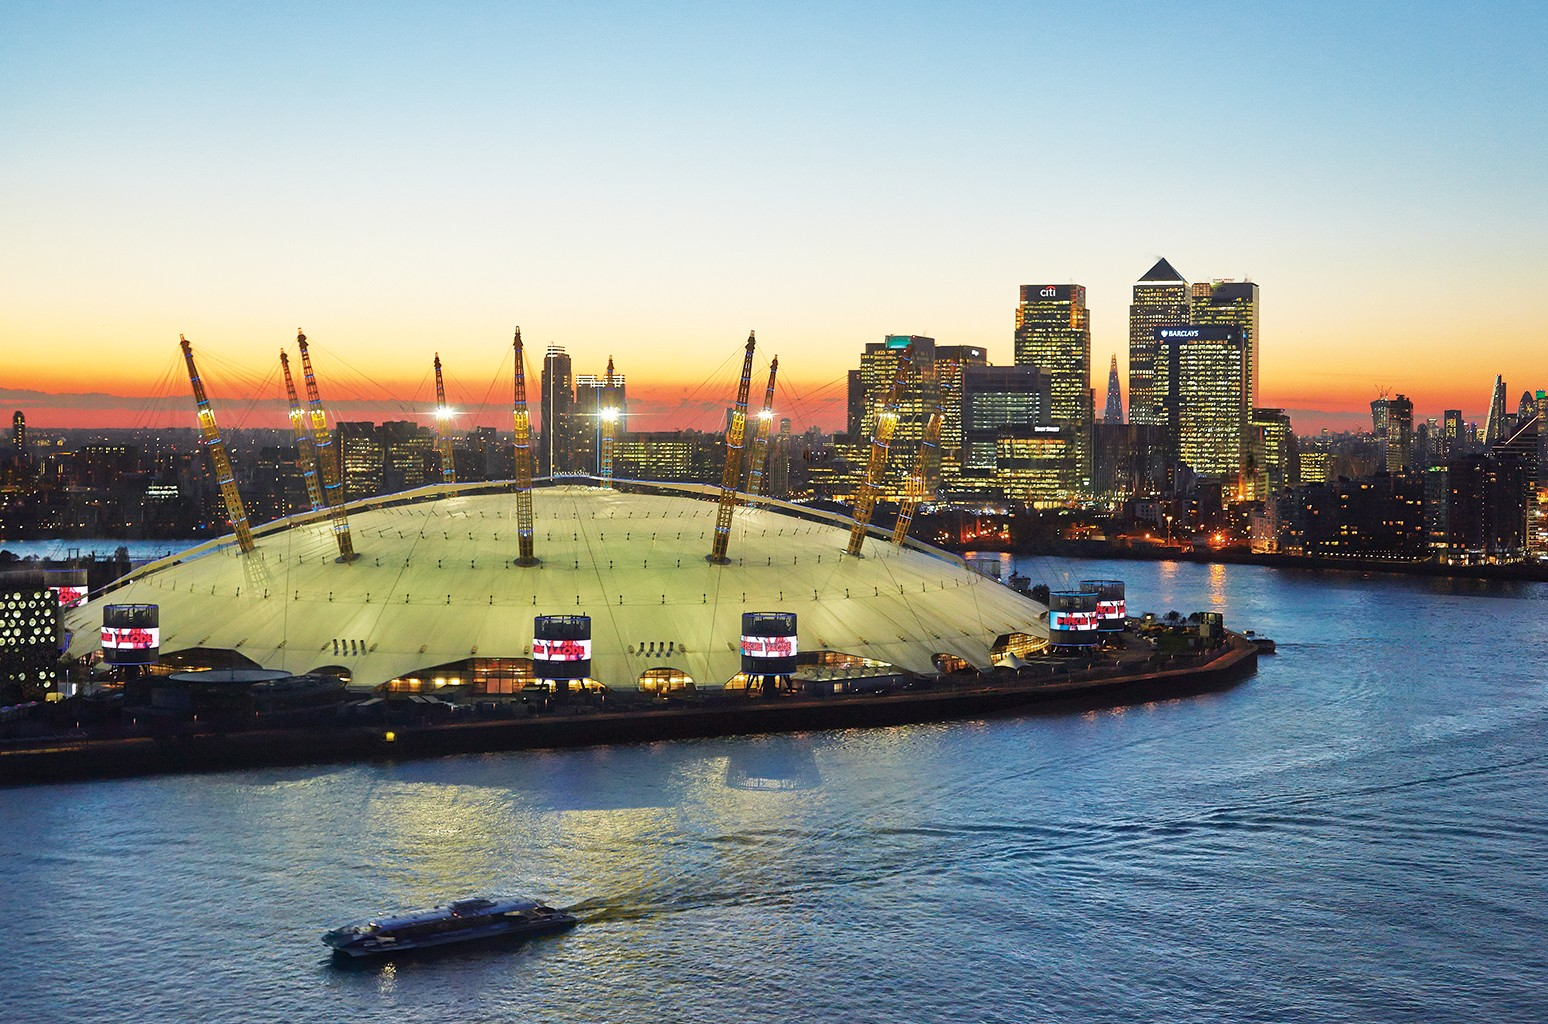 A view from the Emirates Airline of the 02 Arena at sunset with Canary Wharf and the London skyline in the background.